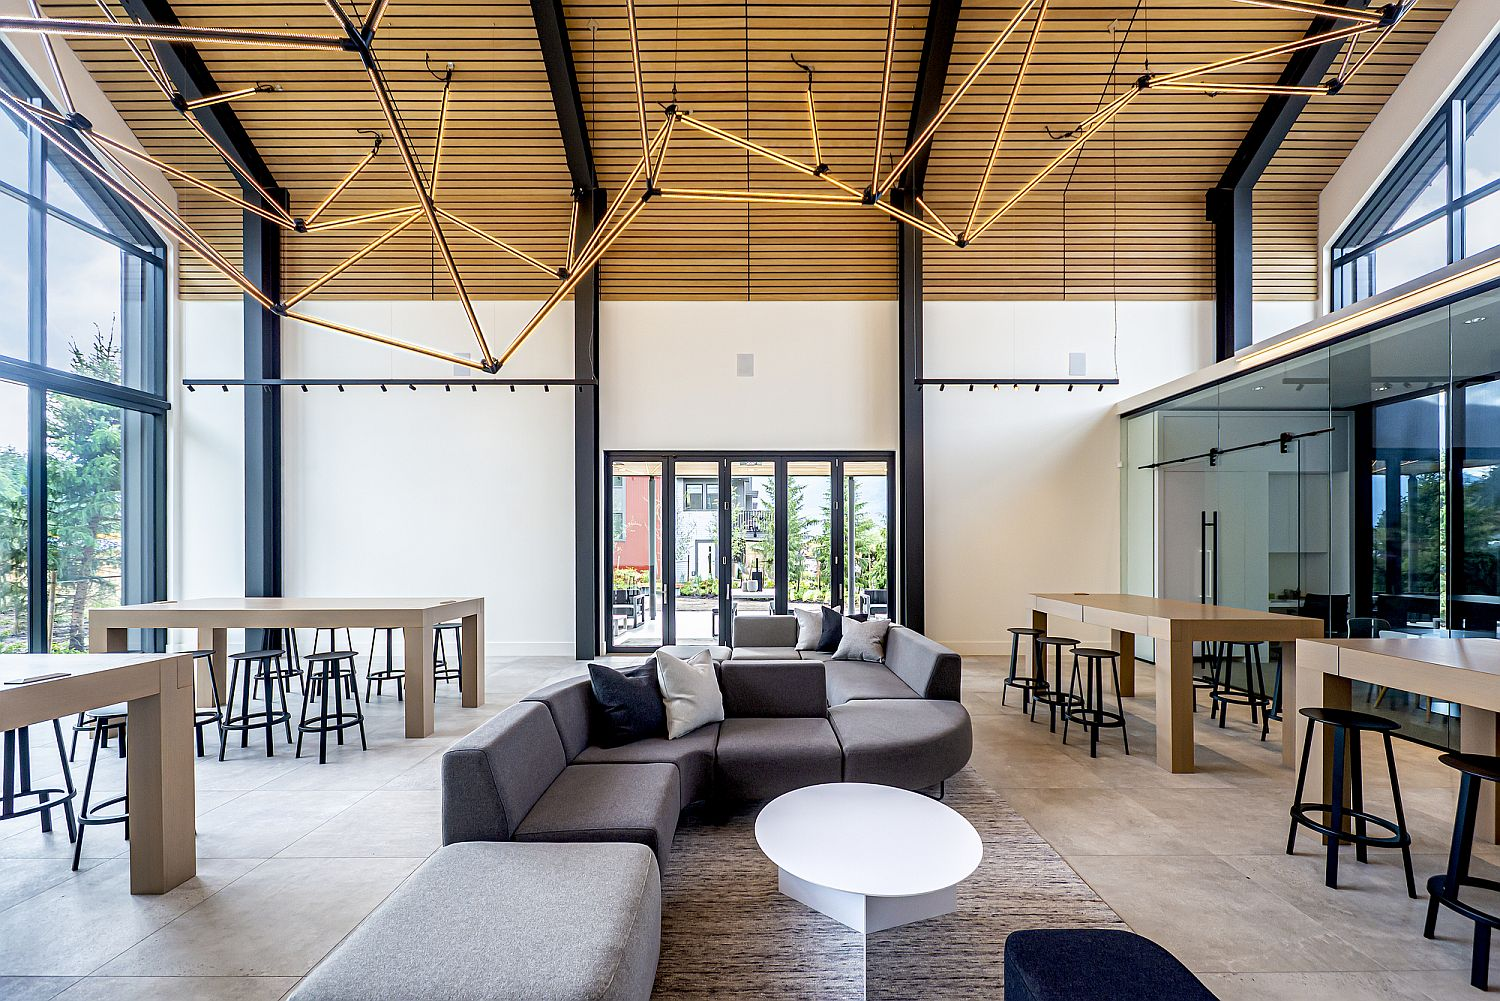 Spacious-double-height-interior-of-the-structure-inspired-by-local-design